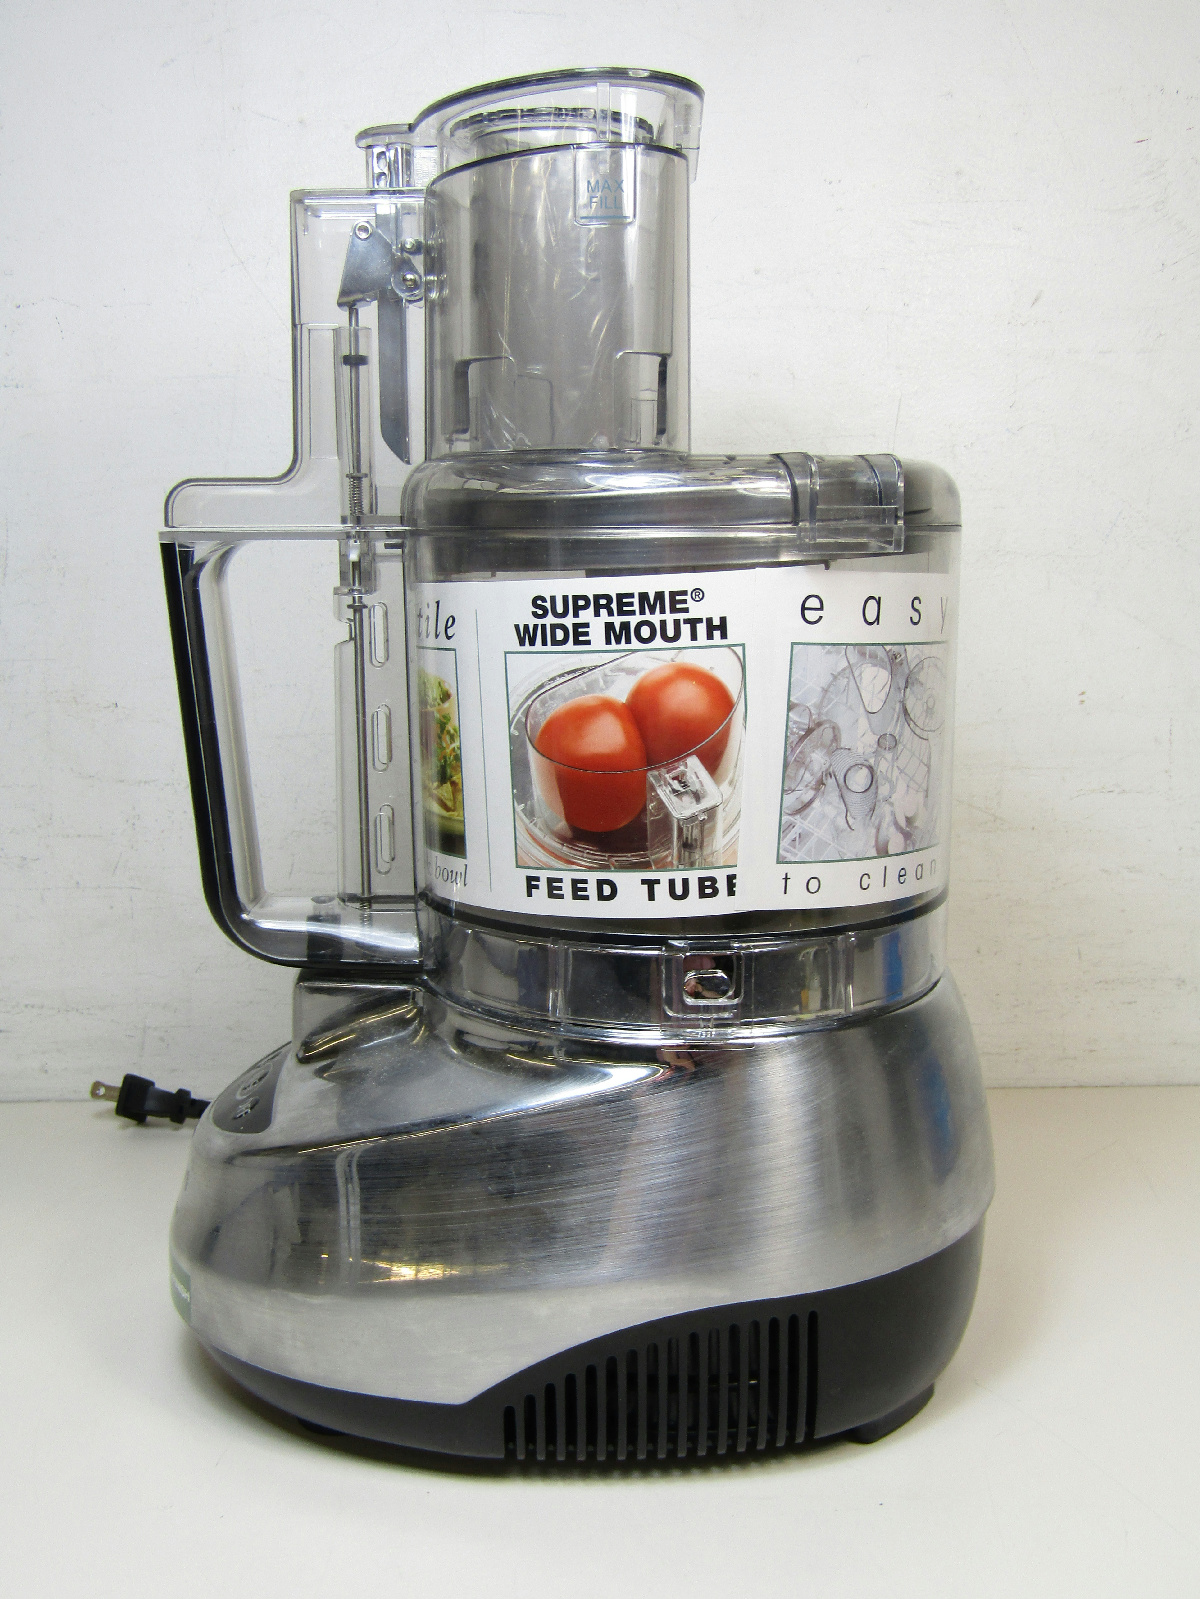 * Cuisinart Prep 9 Cup Food Processor Brushed Stainless Steel Kitchen | eBay